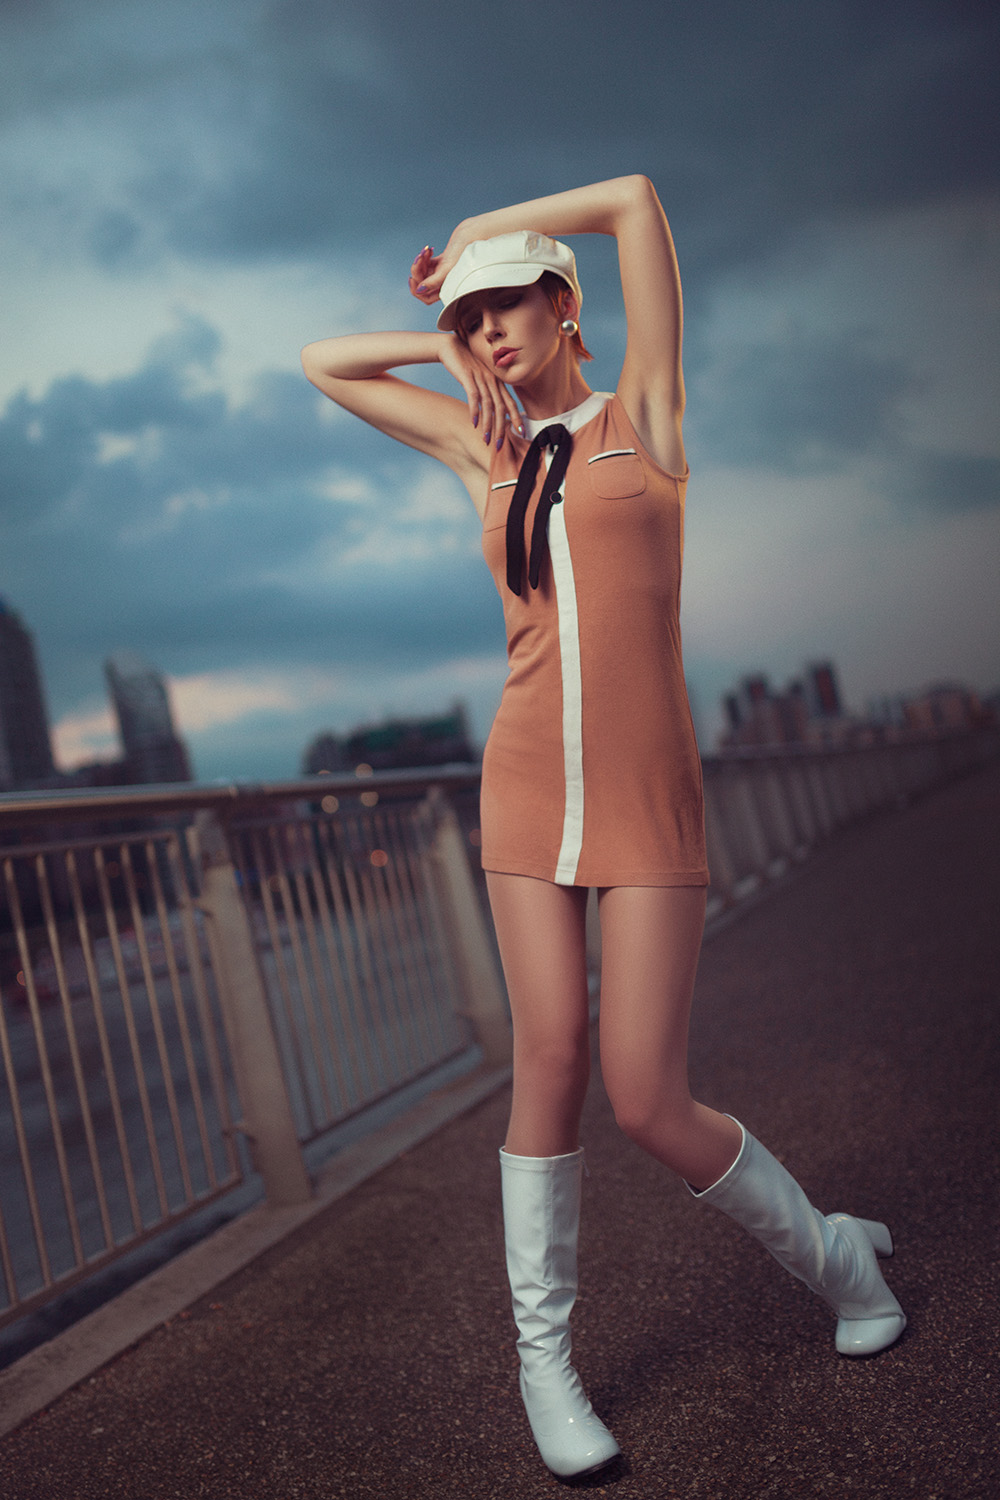 60s themed photoshoot by the side of the River Thames